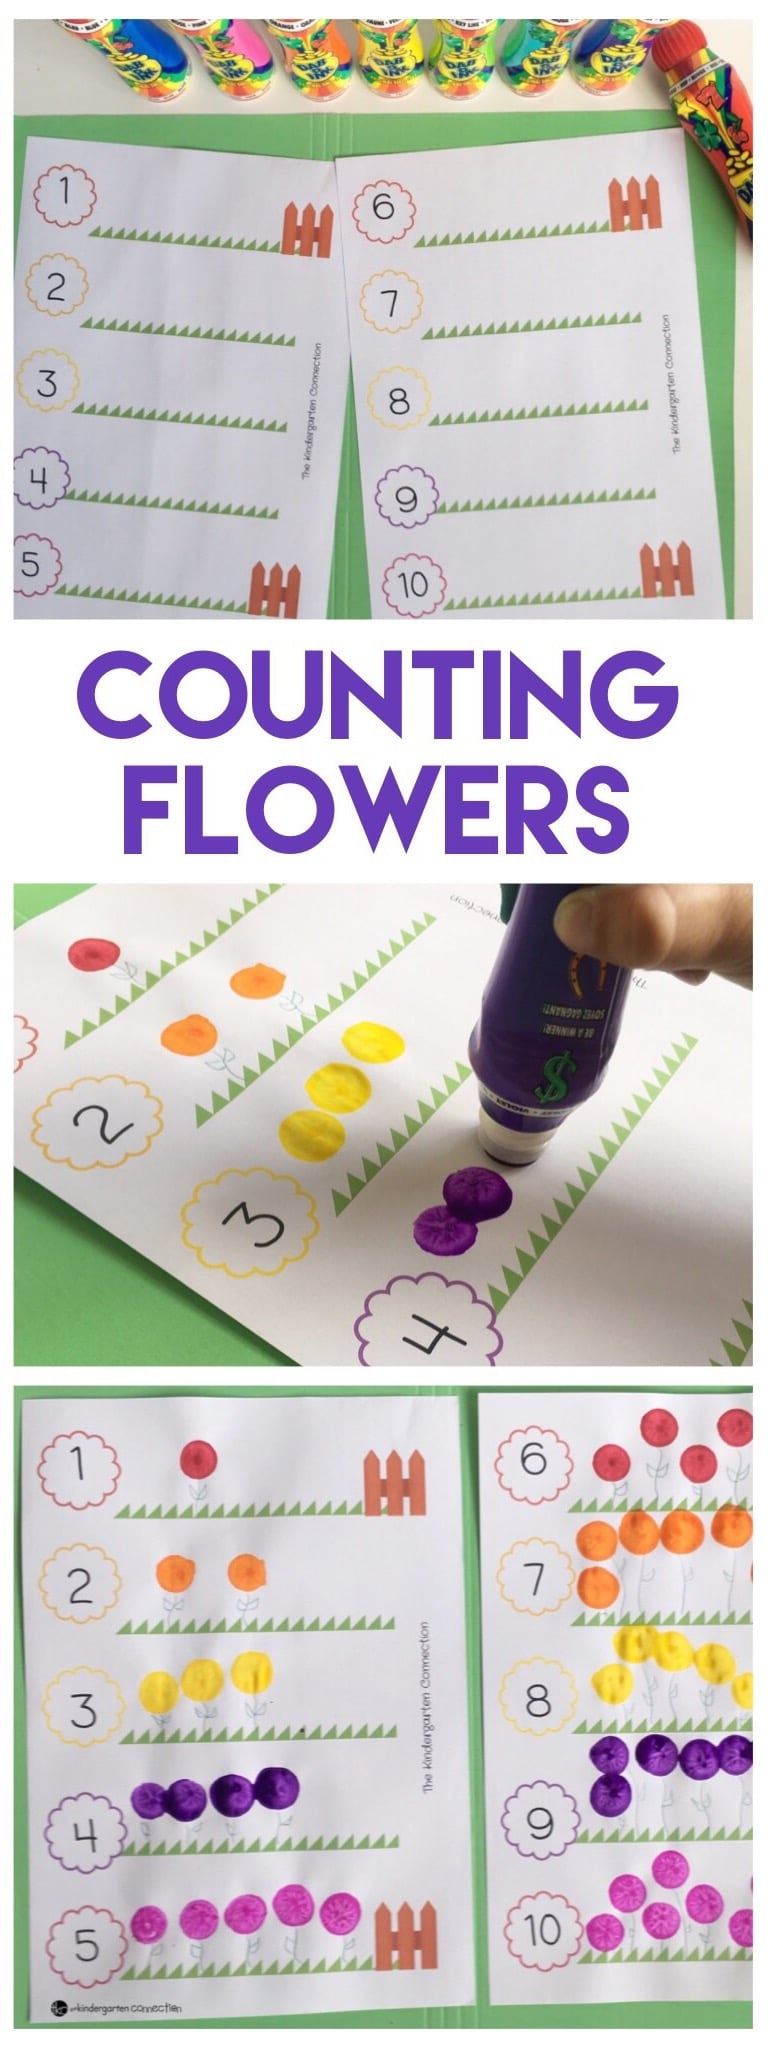 FREE Flower Counting Printable Activity, perfect for one-to-one correspondence and counting in preschool and kindergarten!